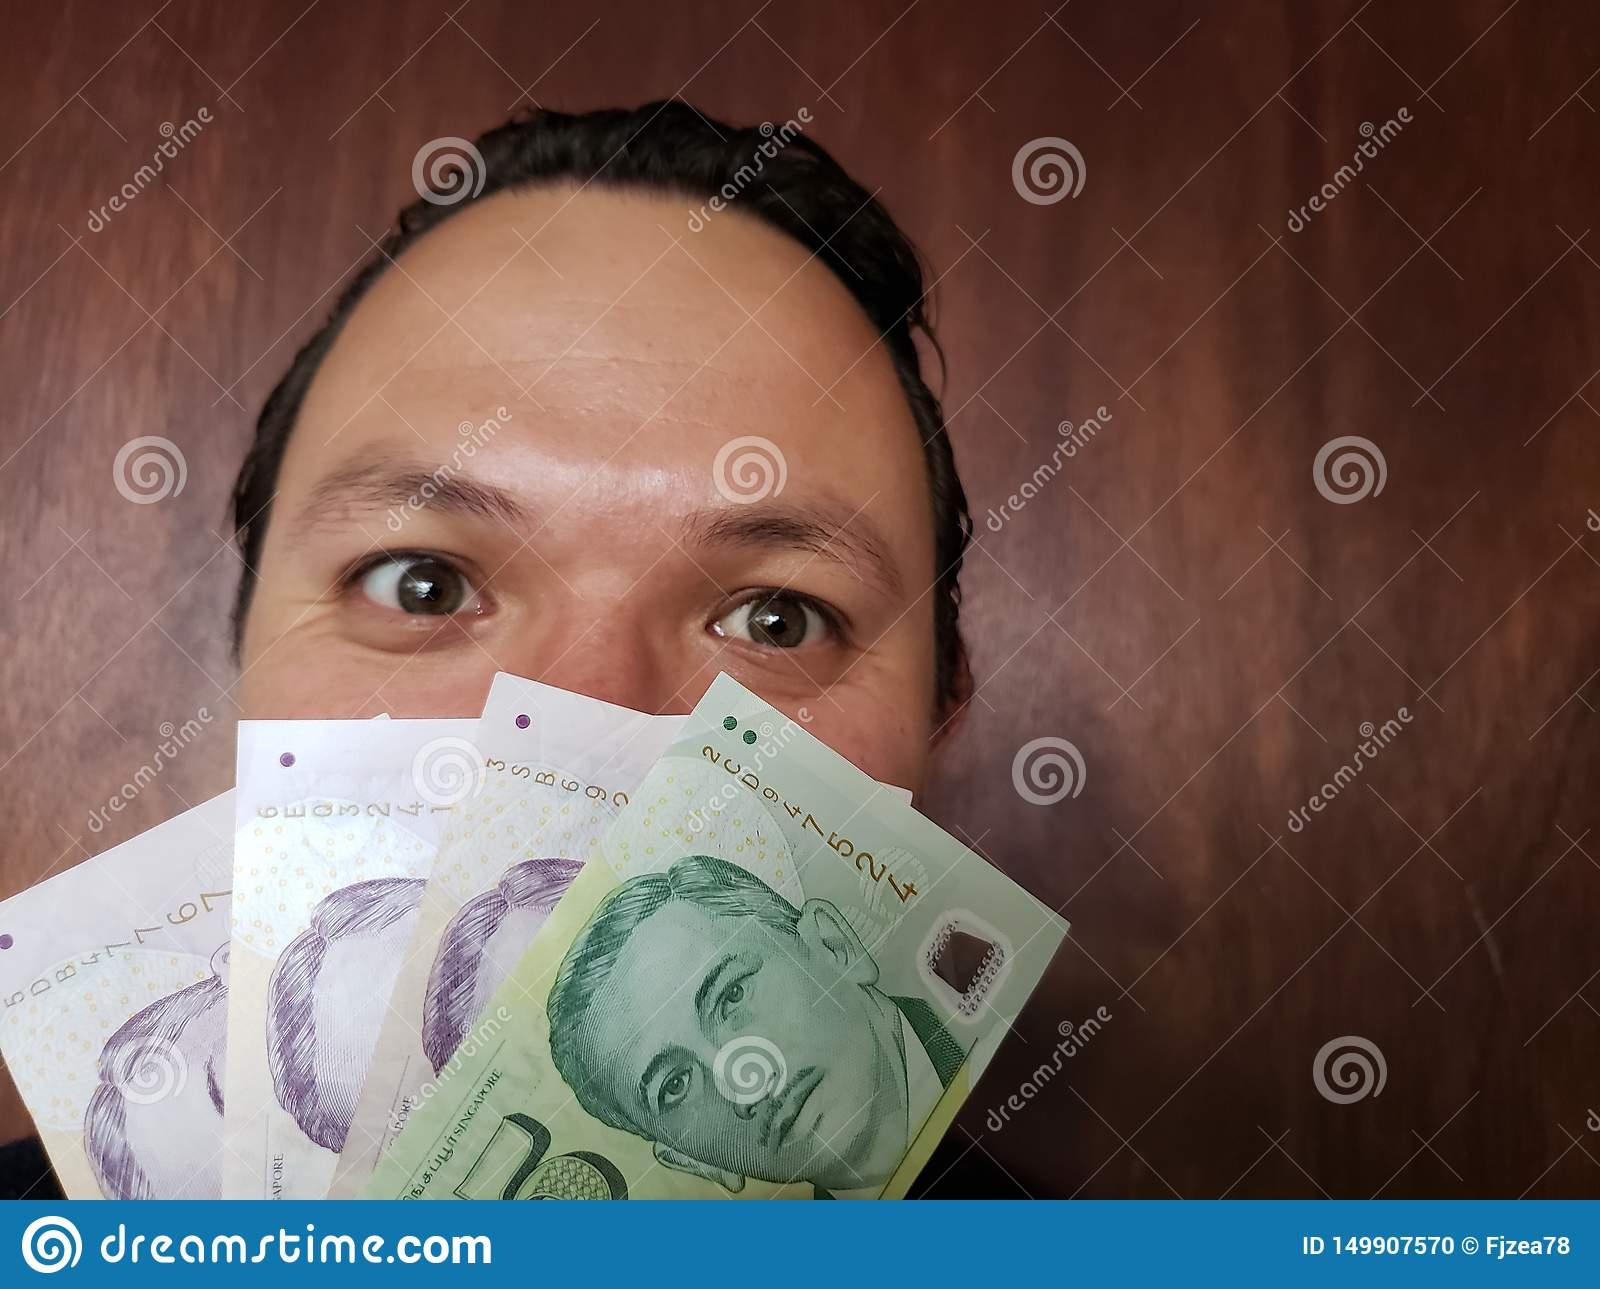 face with emotion expression of a young man and singaporean banknotes